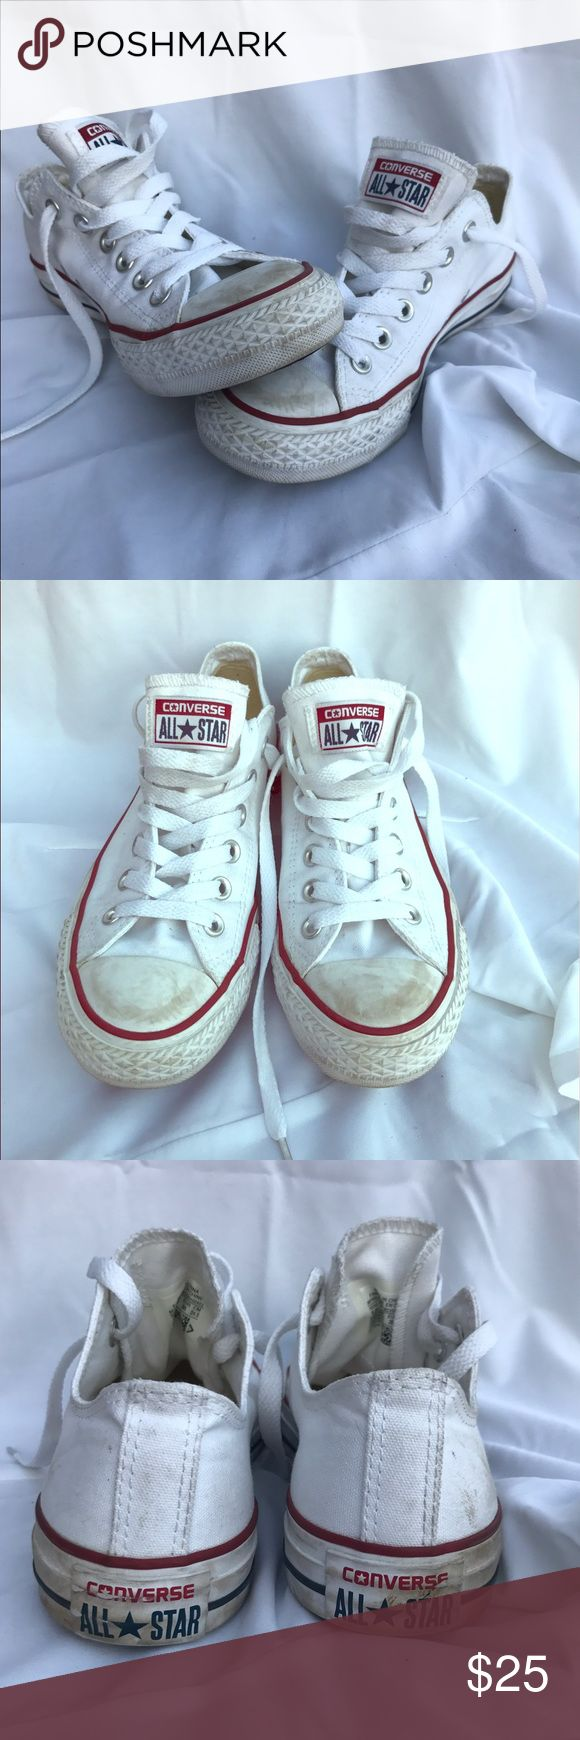 Converse Chuck Taylor's, White, Size 5.5! Converse Chuck Taylors. Women's Size 5.5. White with red and blue trim and logo! Gently worn but good condition, no rips! Sole is in great condition. Pet Free Smoke Free Household! Converse Shoes Sneakers